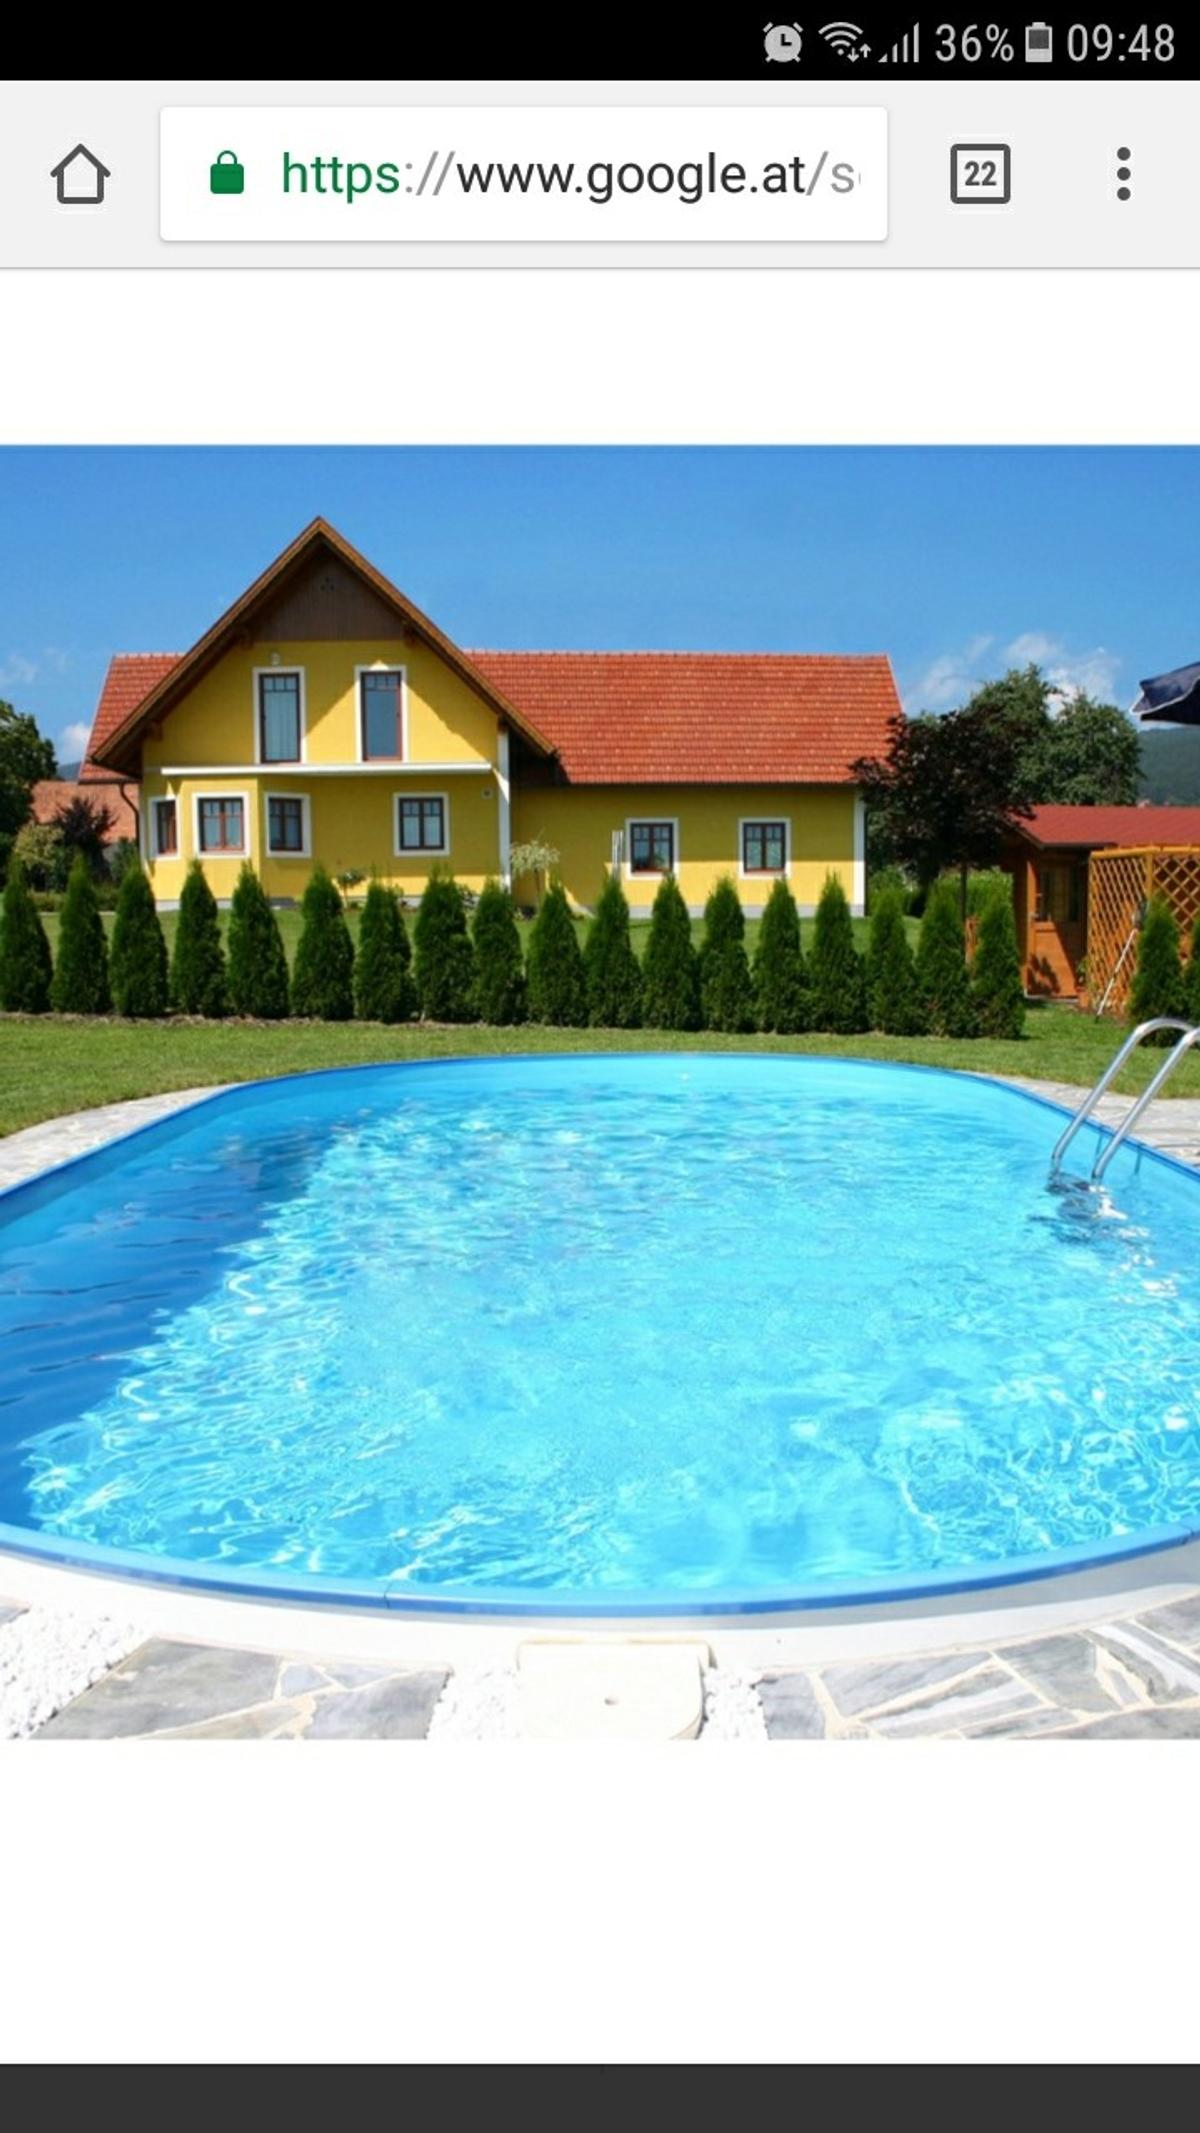 Neuer Pool In 8811 Scheifling For 2 600 00 For Sale Shpock - Intex Pool Eingraben